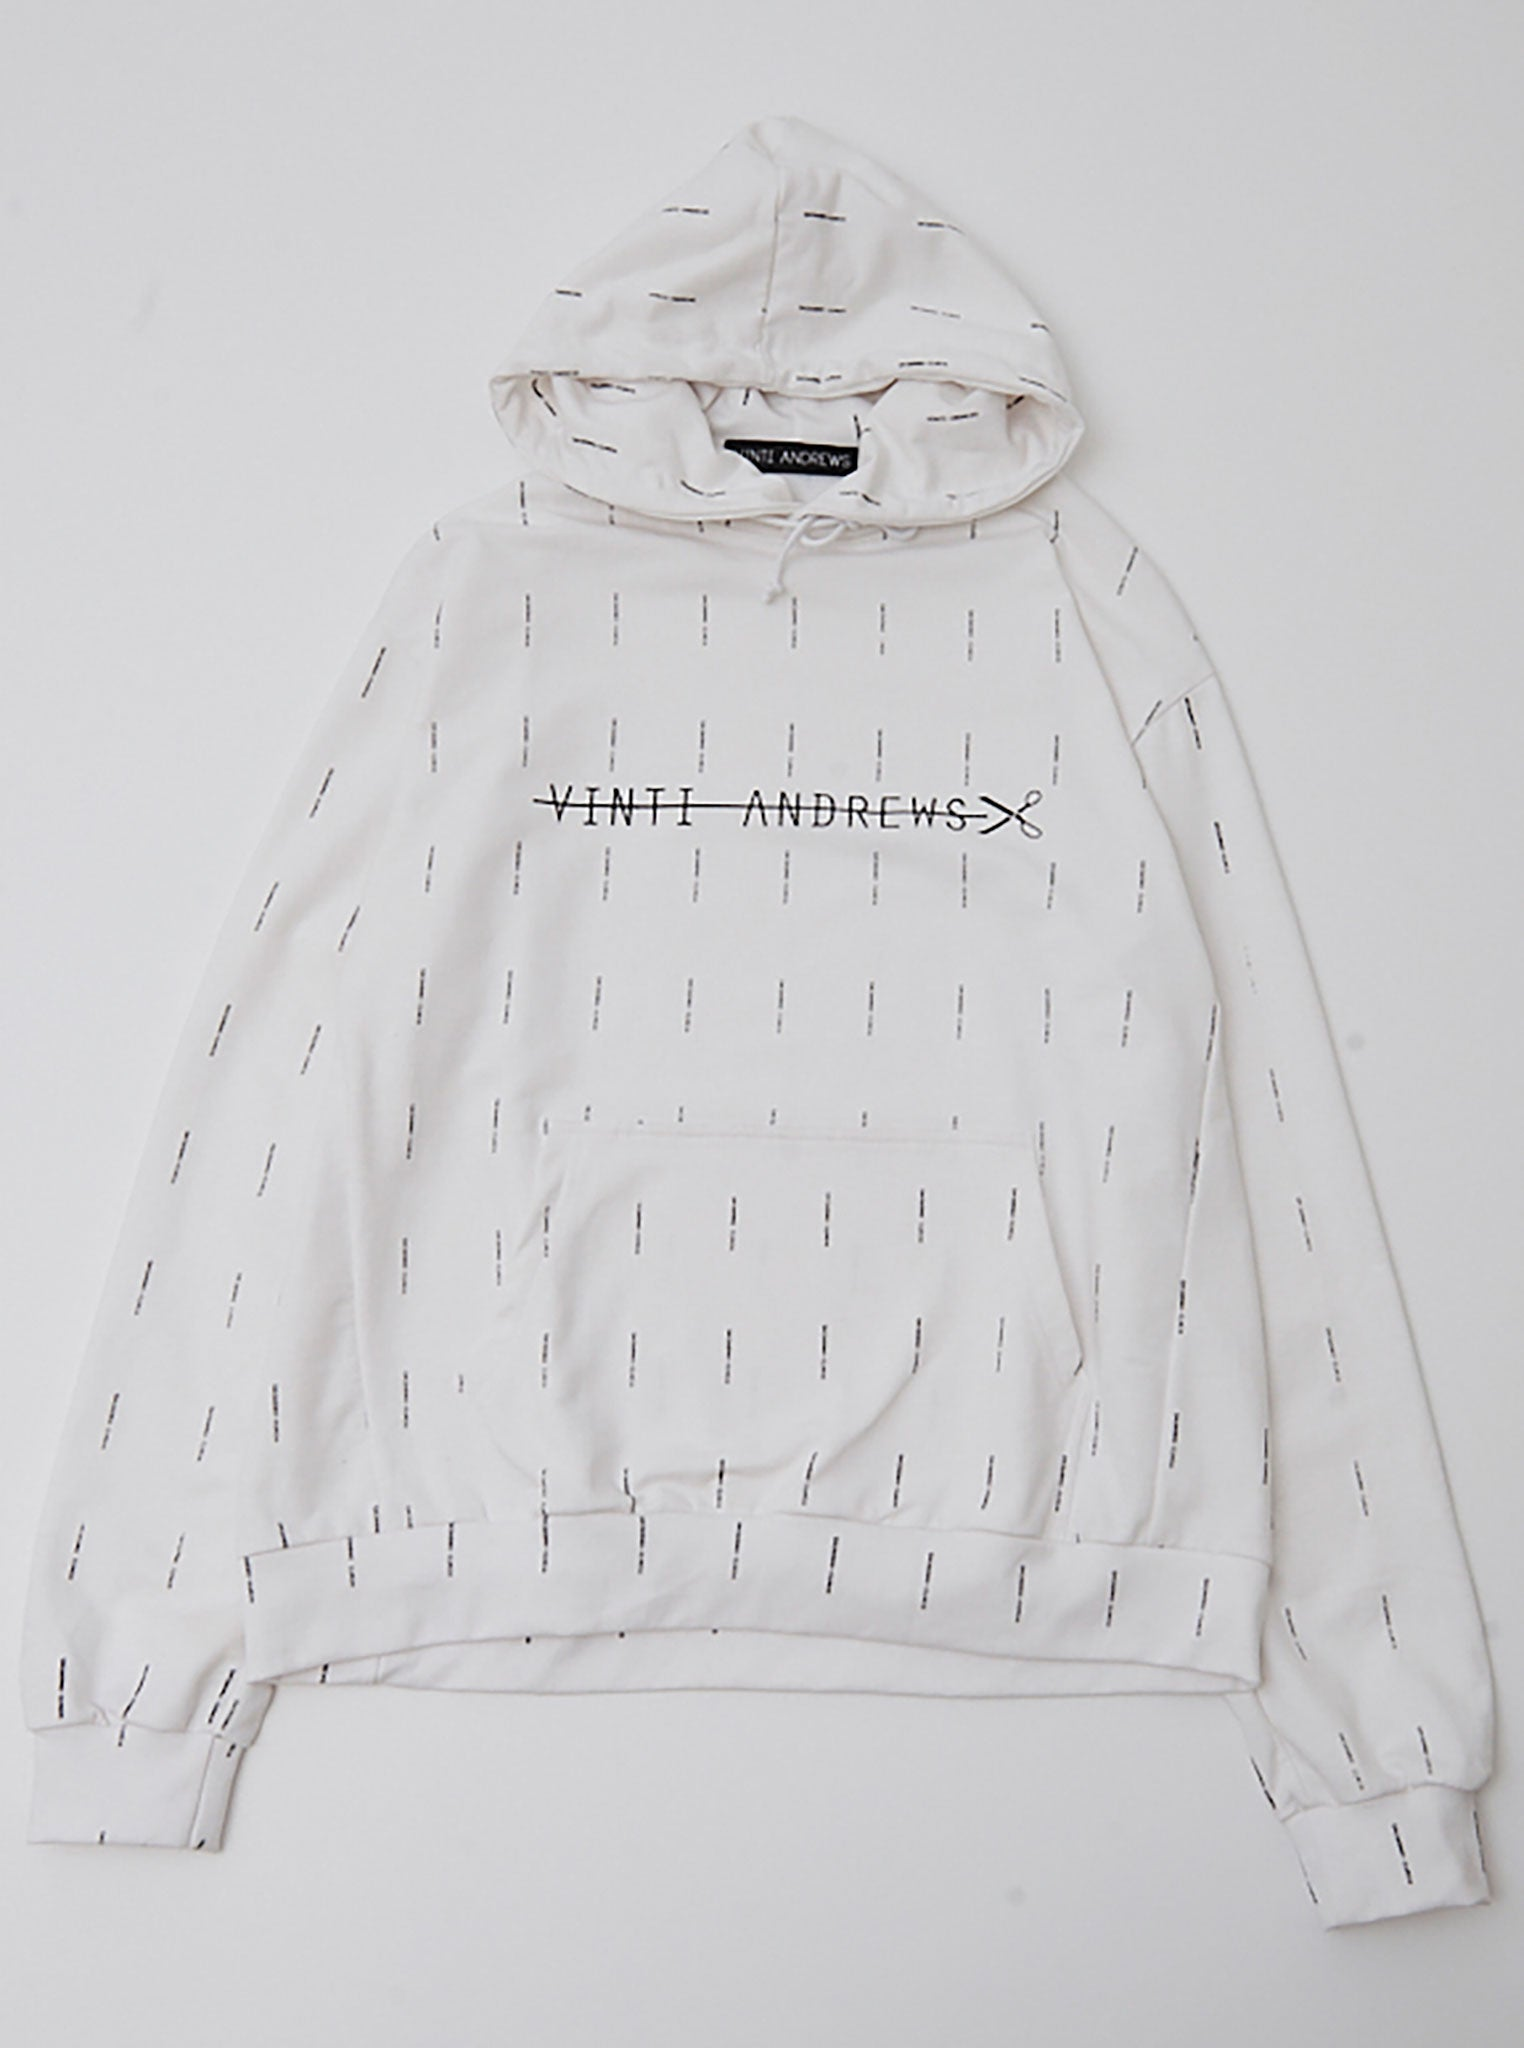 Vinti Andrews Printed Allover Hoody